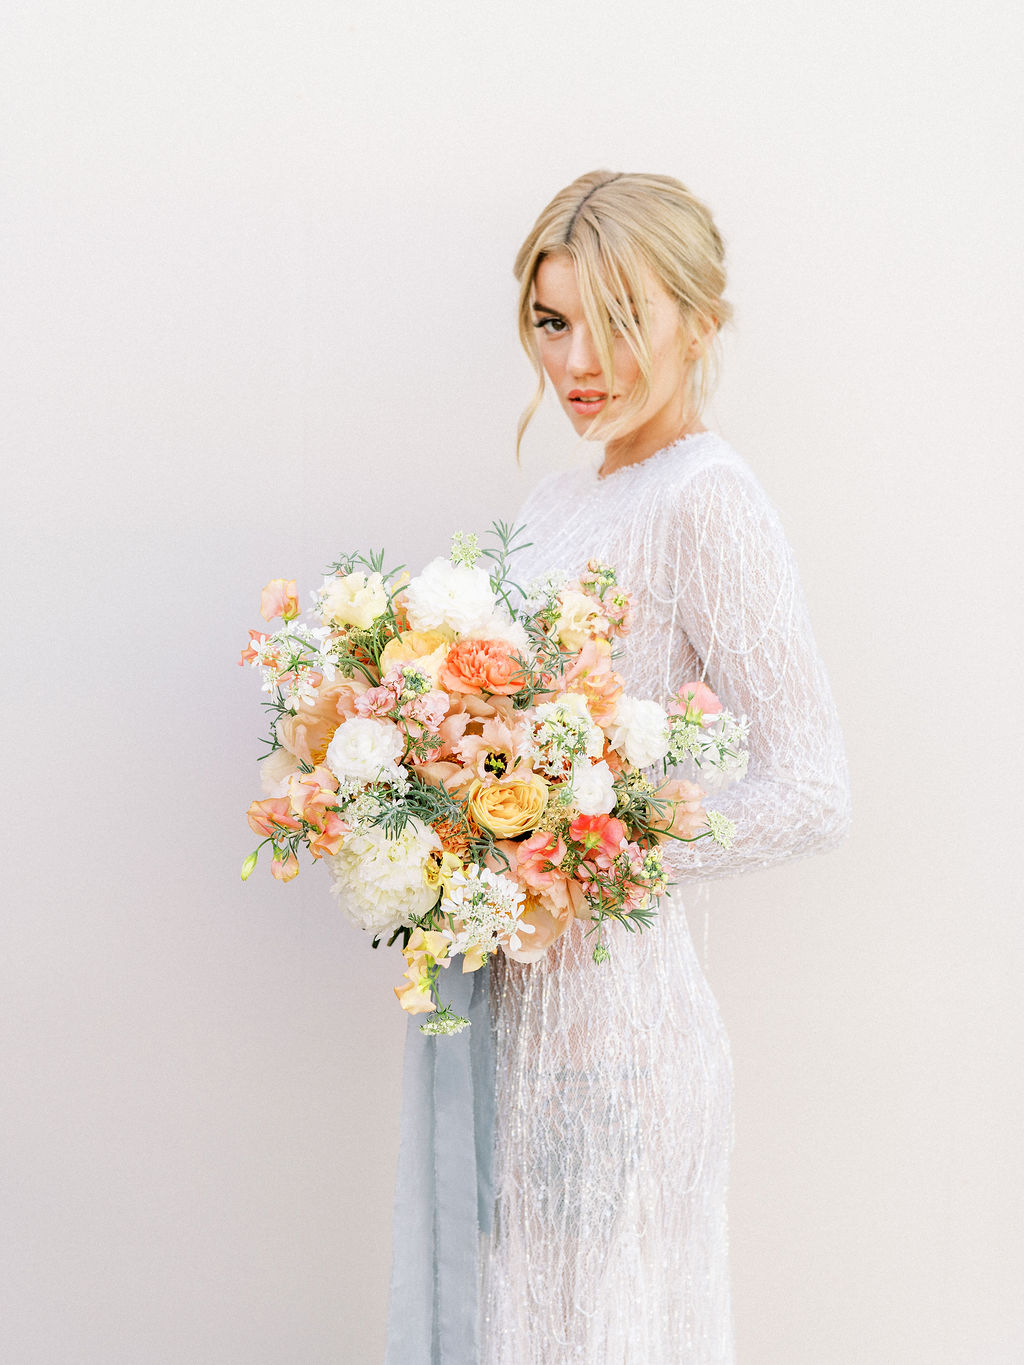 Timeless Spring Wedding Design With A Modern Twist Bride Portrait